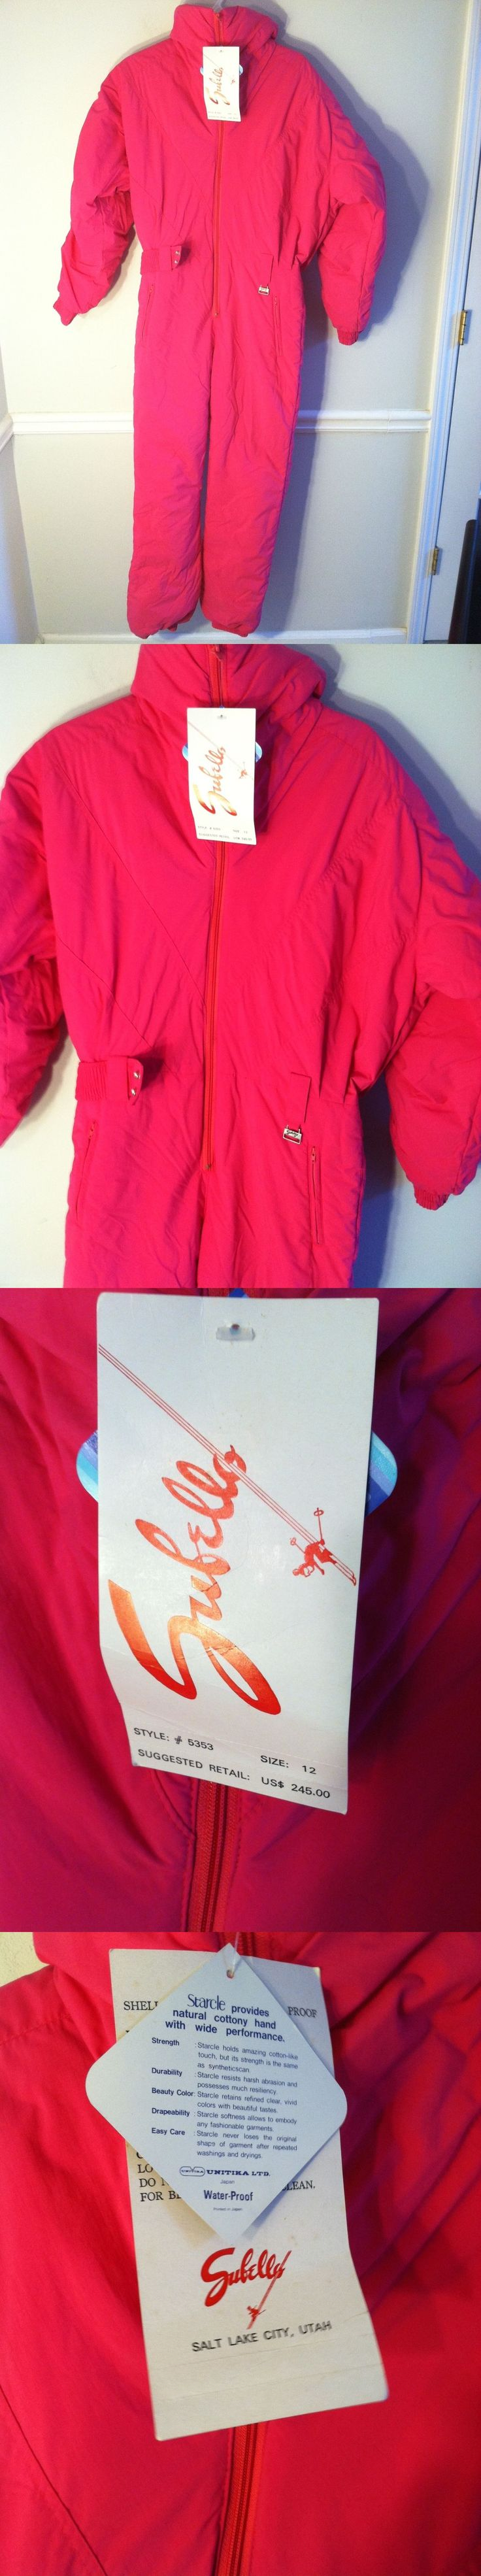 Snowsuits 62178: New Subello Women S Size 12 Pink Ski Suit Outfit 5353 Snowboarding One Piece 1 -> BUY IT NOW ONLY: $139.99 on eBay!